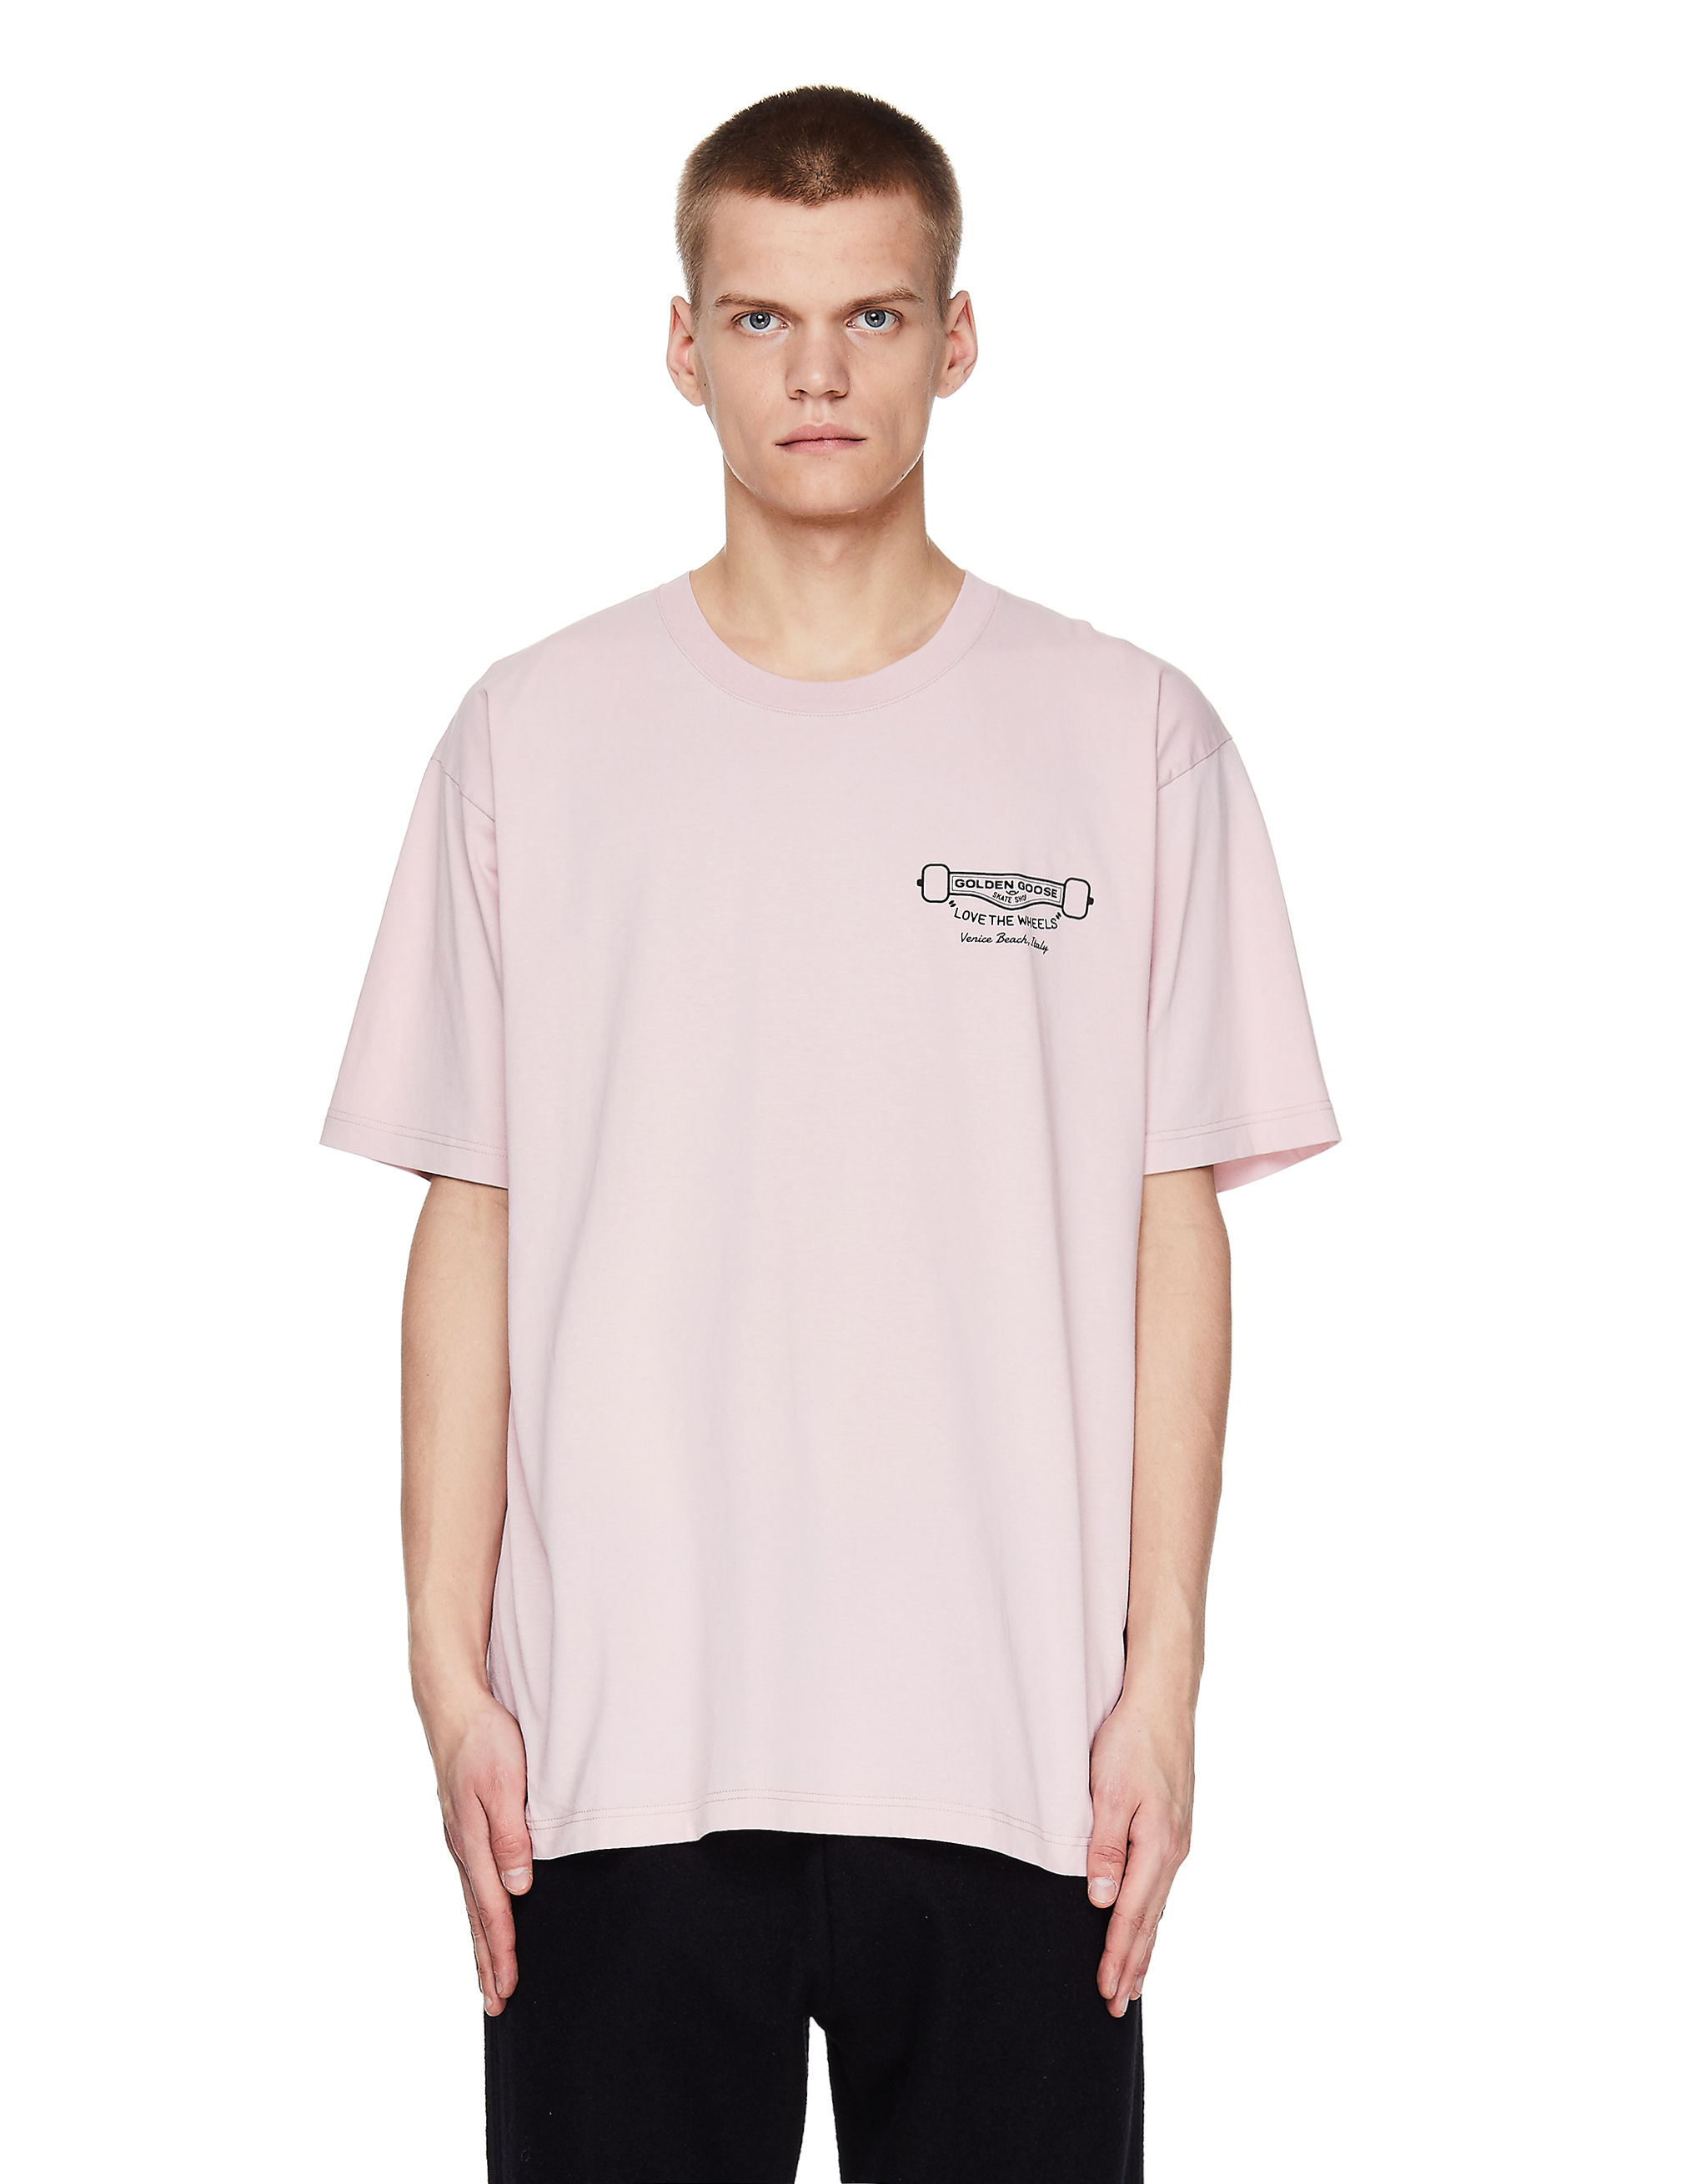 Golden Goose Love The Wheels Printed T-Shirt